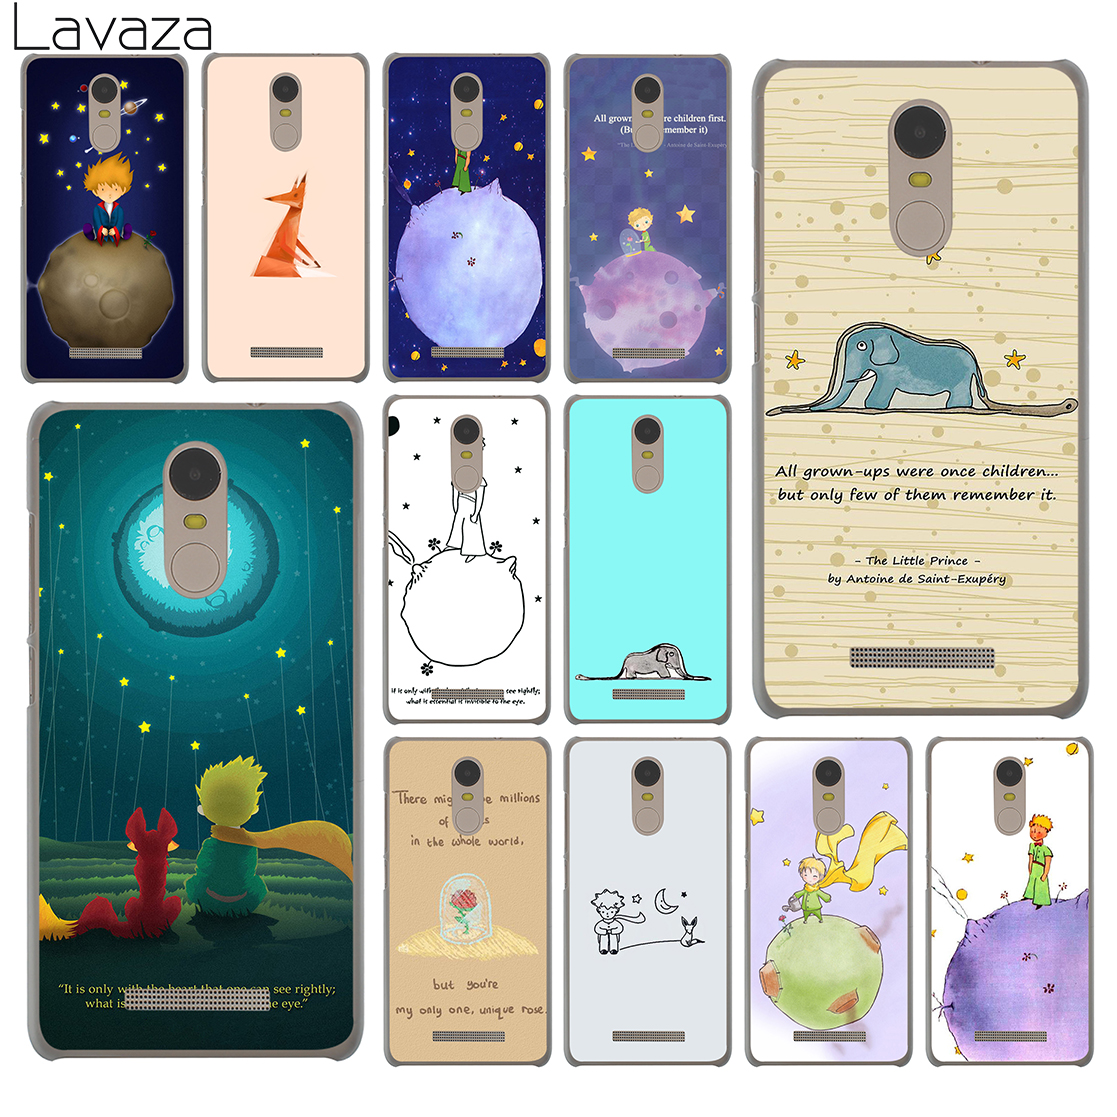 Lavaza Lovely the Little Prince fox On Mint Case for Xiaomi Redmi 4A Mi 8 SE 6 A1 5X 5S Plus MiA1 Note 5 Pro 4 4X 5A Prime Mi8 ...